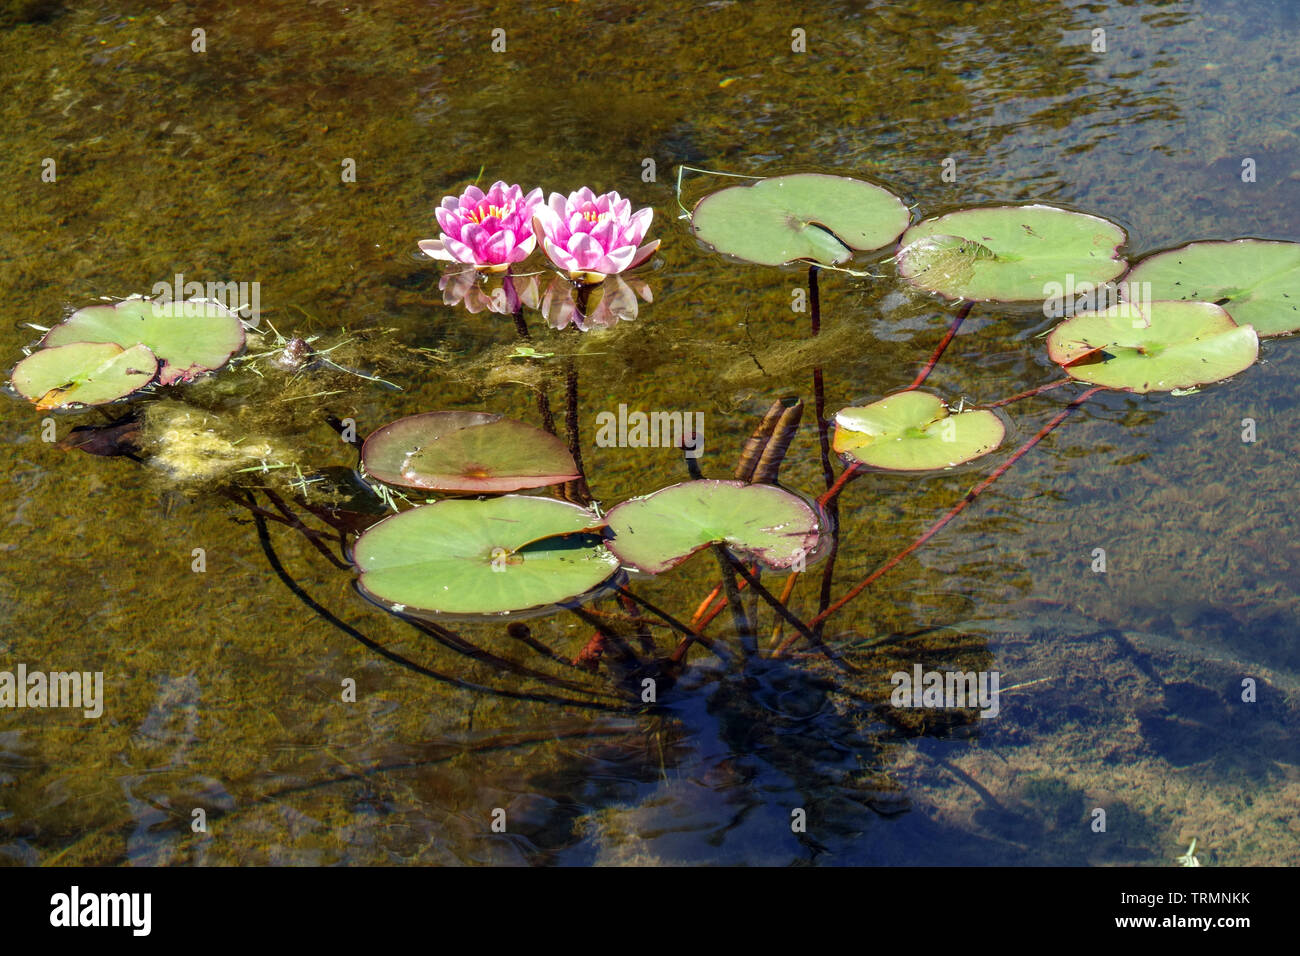 Water lily flowers stems and leaves in water - Stock Image